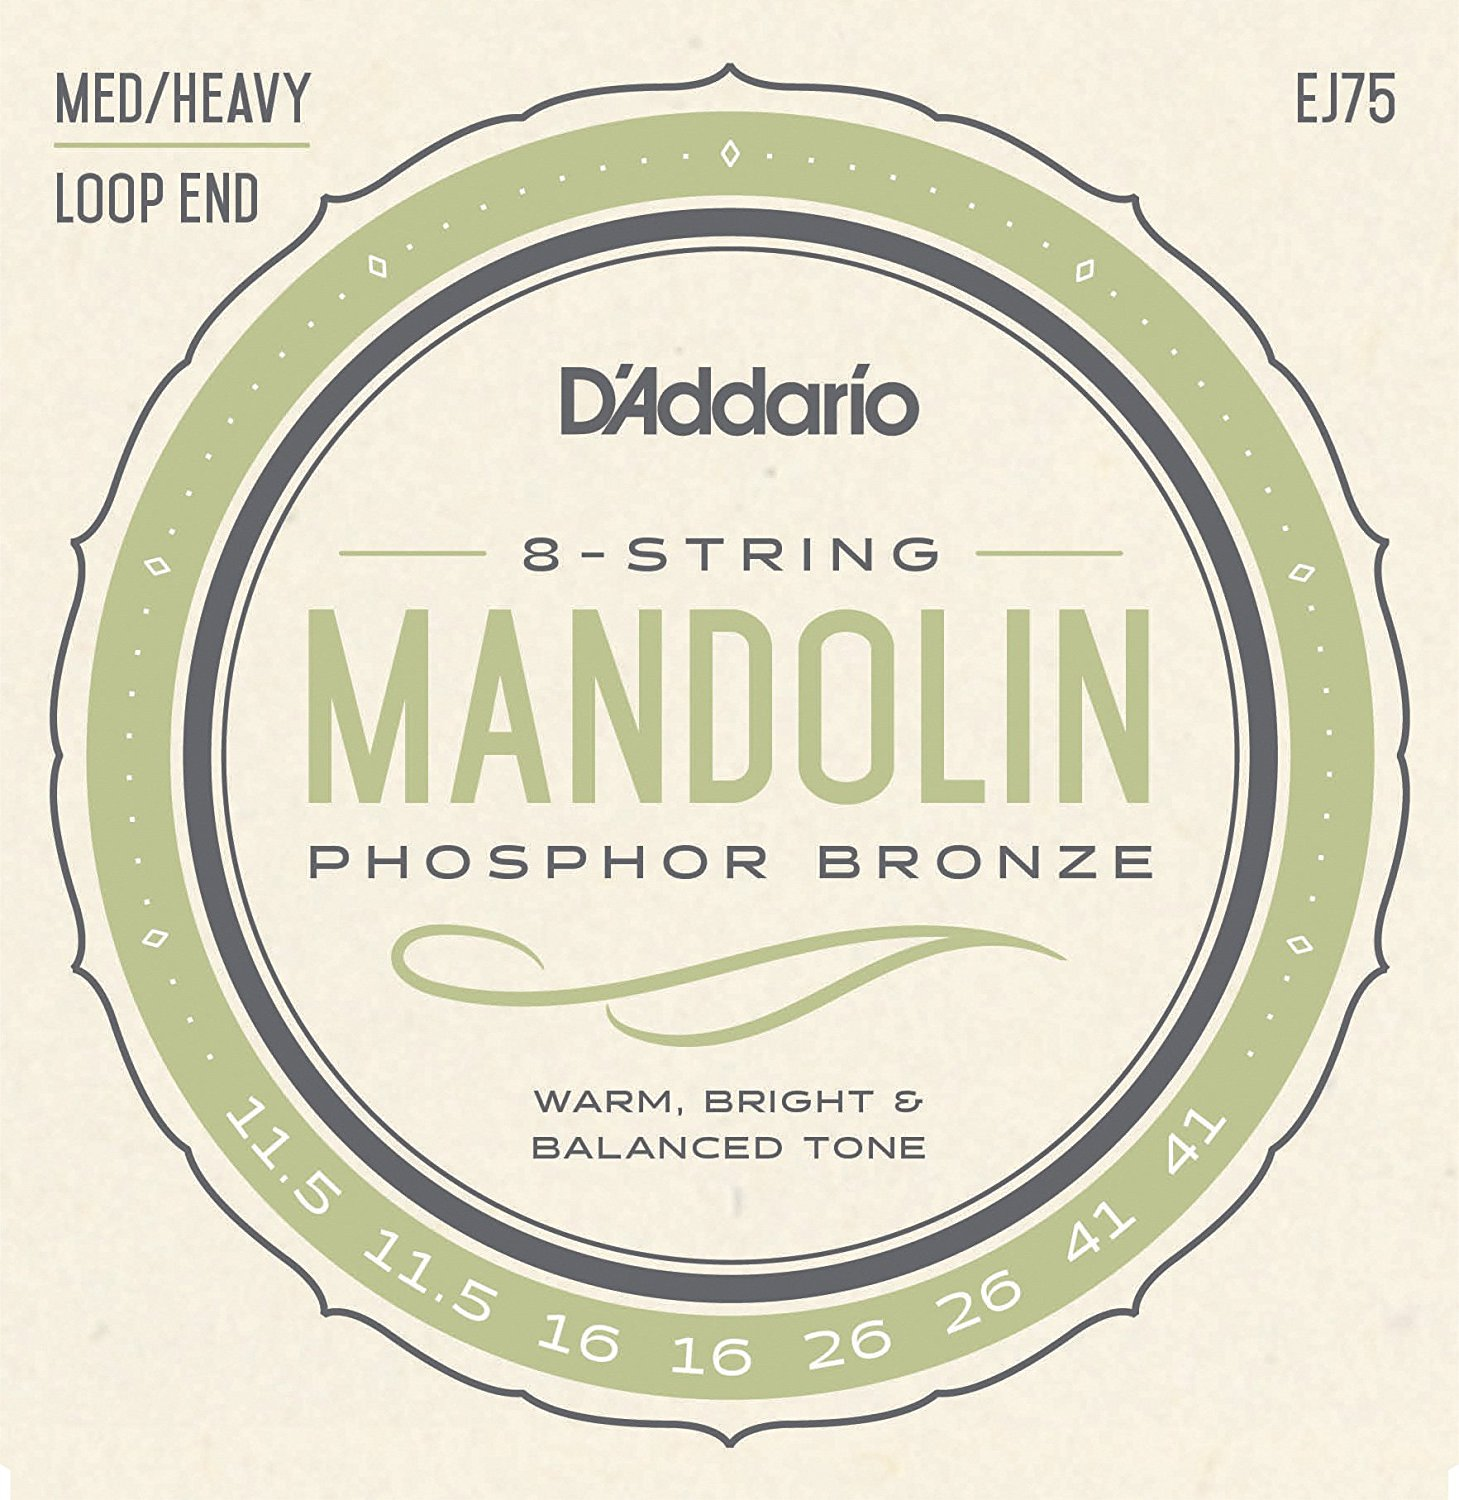 D Addario EJ75 Phosphor Bronze Mandolin Strings, Loop End - Medium/Heavy, 11.5-41